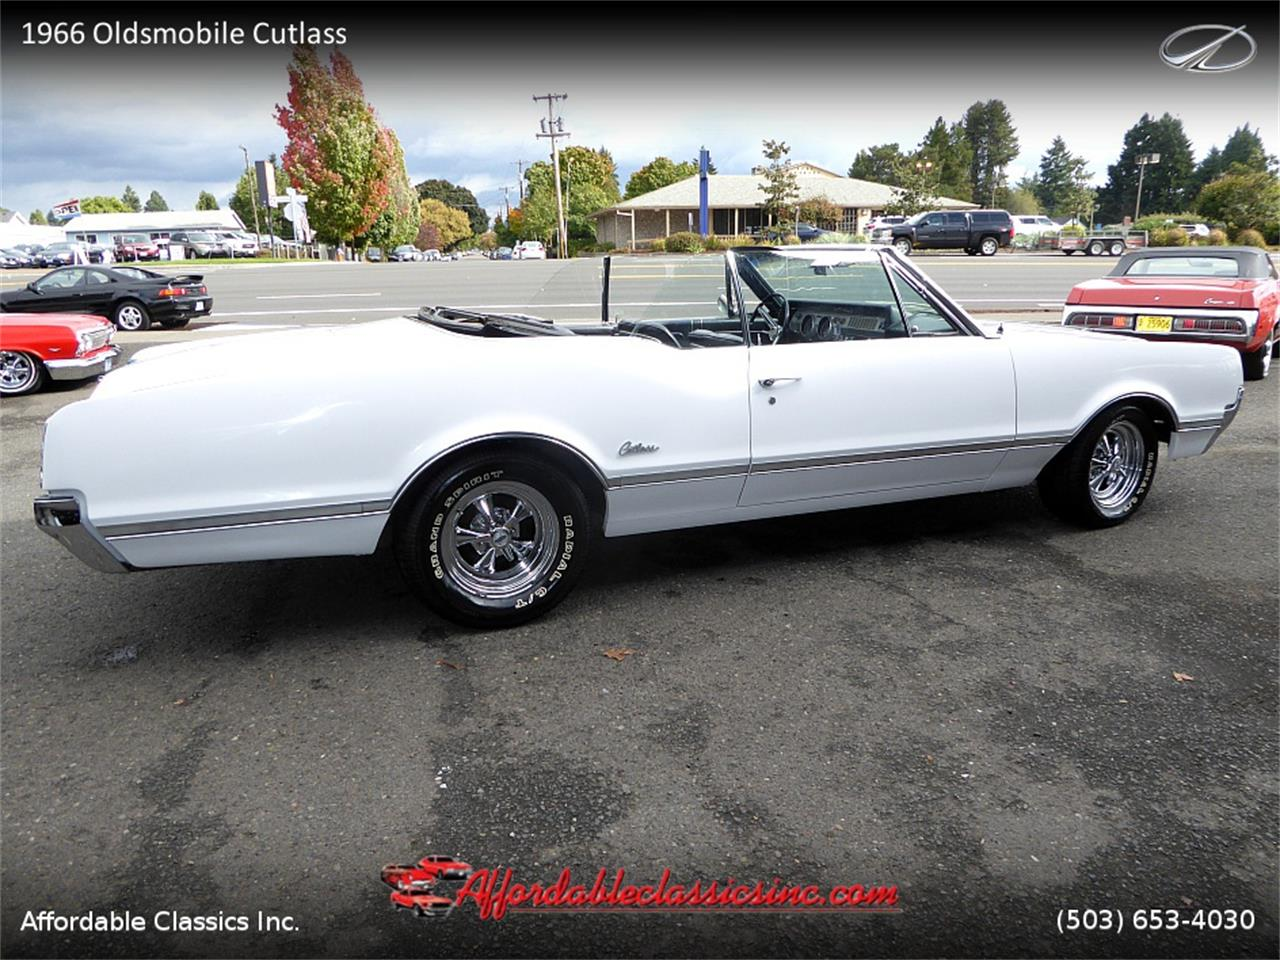 Large Picture of '66 Oldsmobile Cutlass located in Oregon - $25,500.00 Offered by Affordable Classics Inc - MN4C